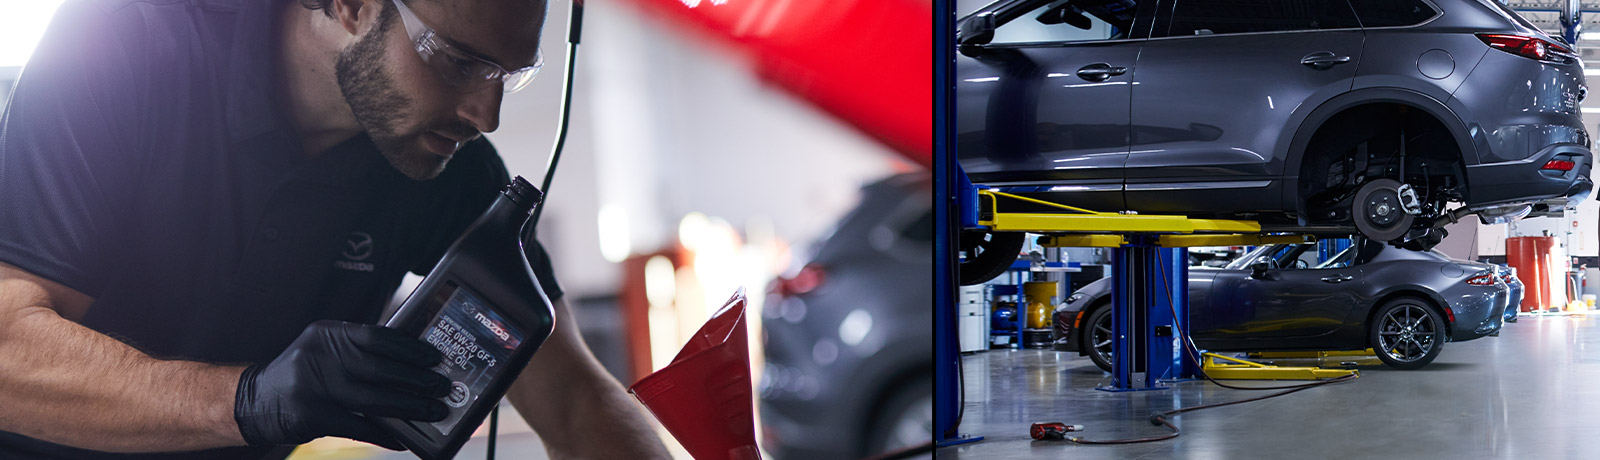 Change My Oil | Preston Mazda, Local Mazda Dover DE Dealership